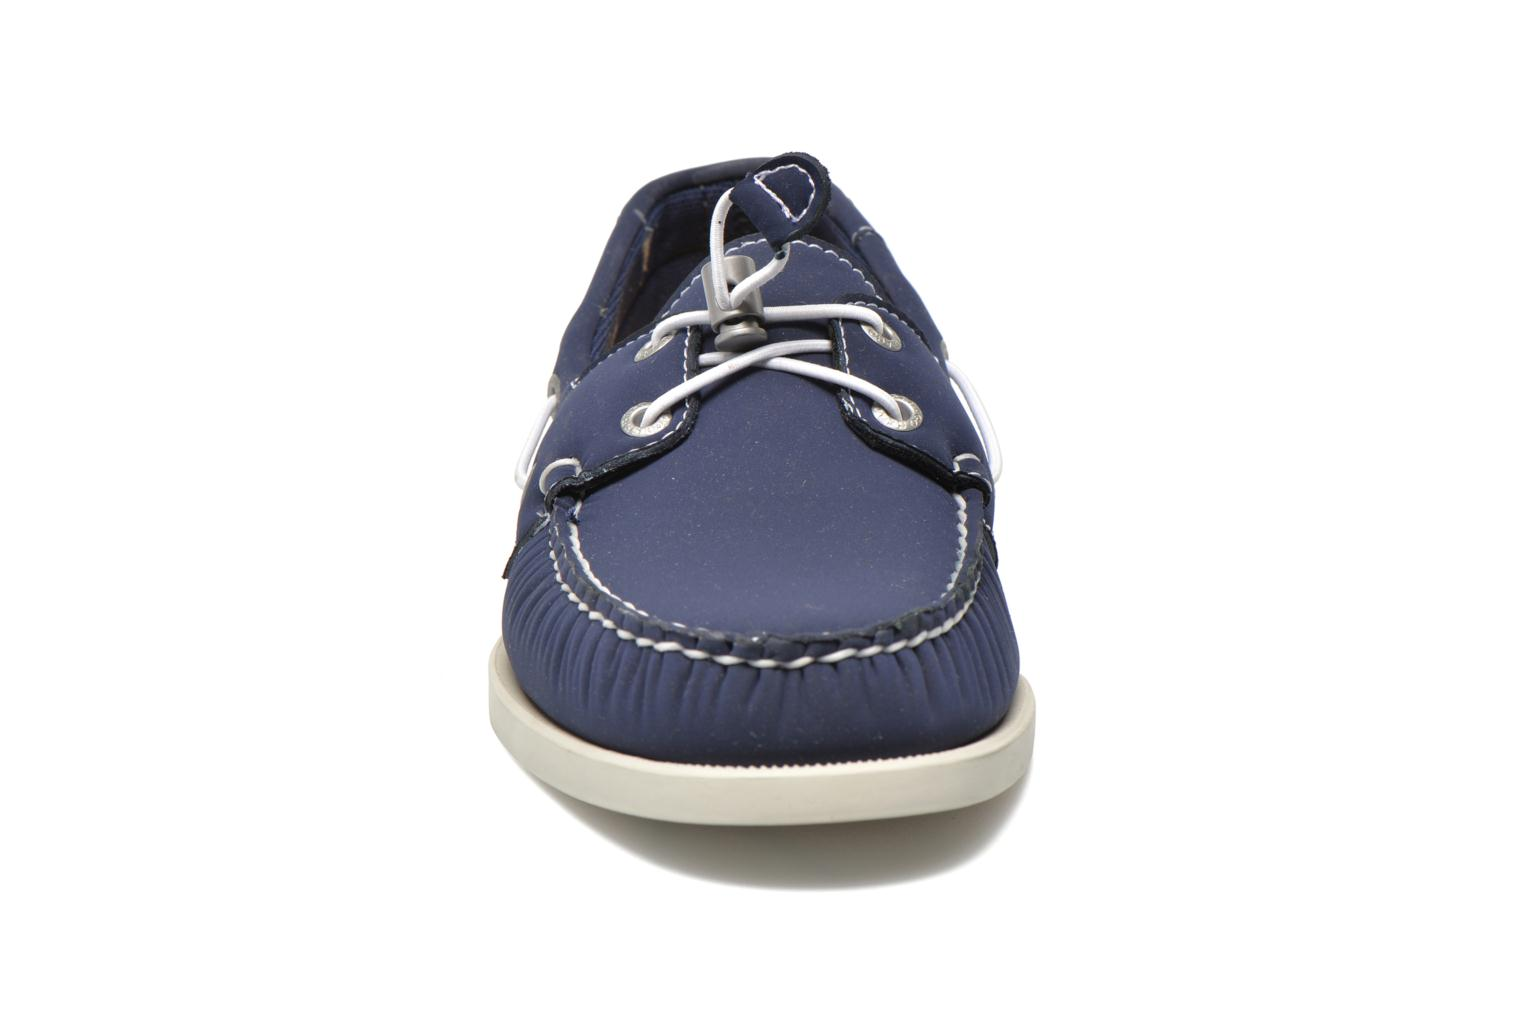 Docksides neoprene Navy Neoprene